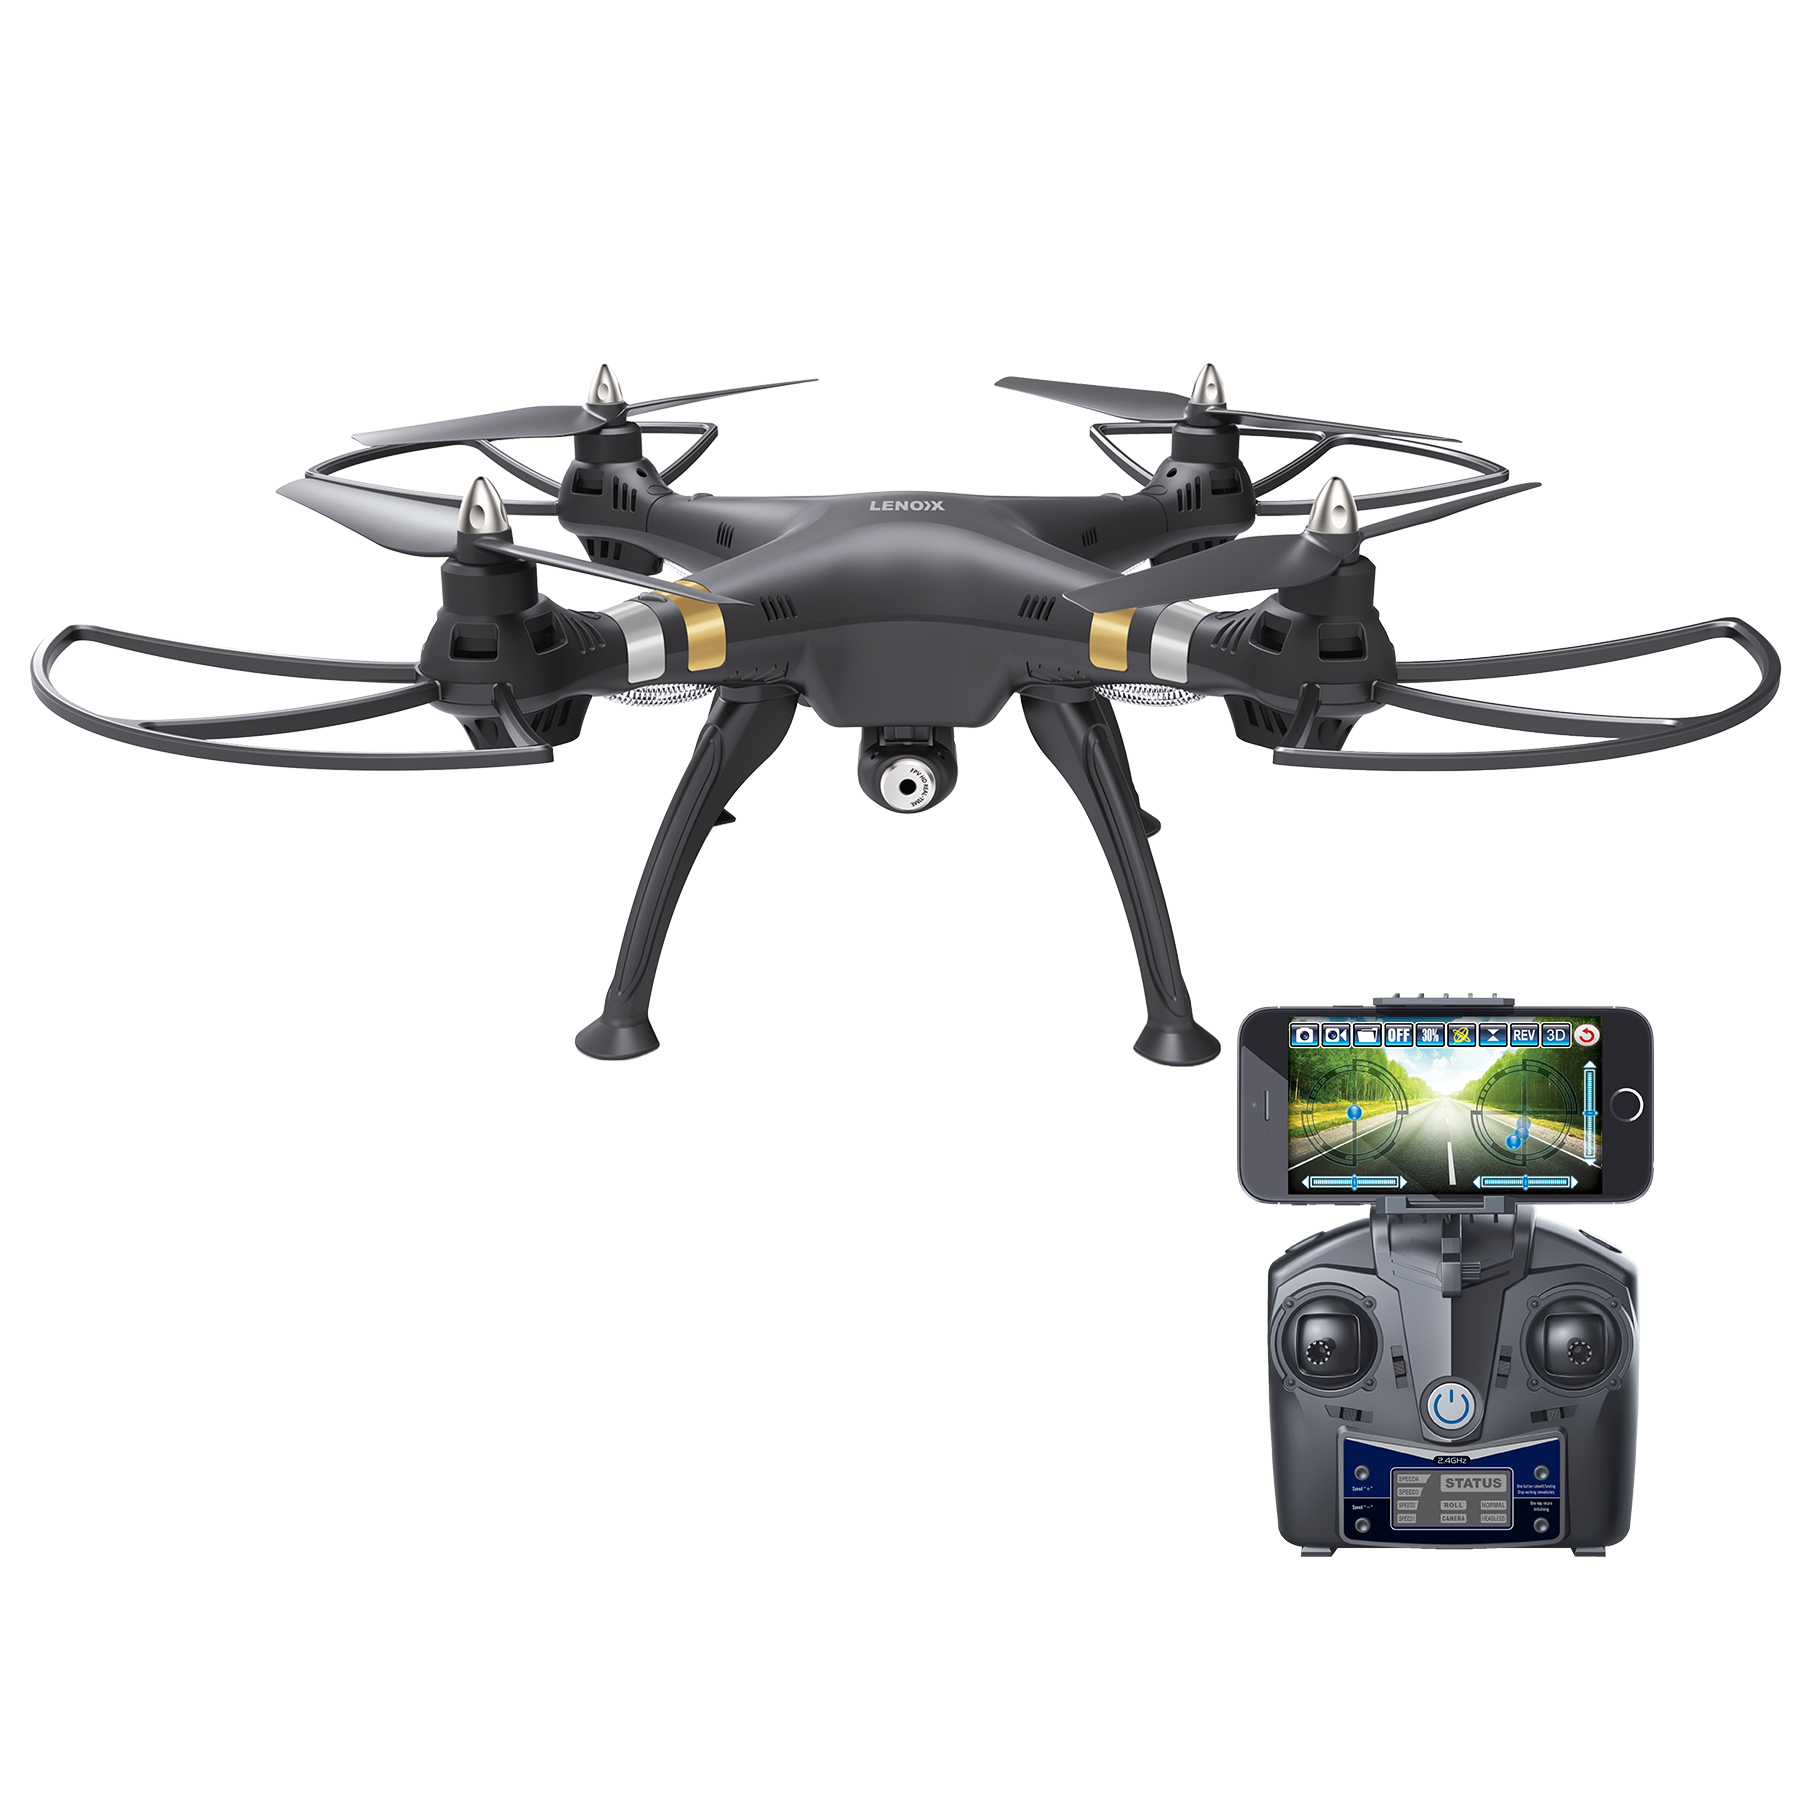 LENOXX FD1400 LONG DISTANCE DRONE WITH WIFI